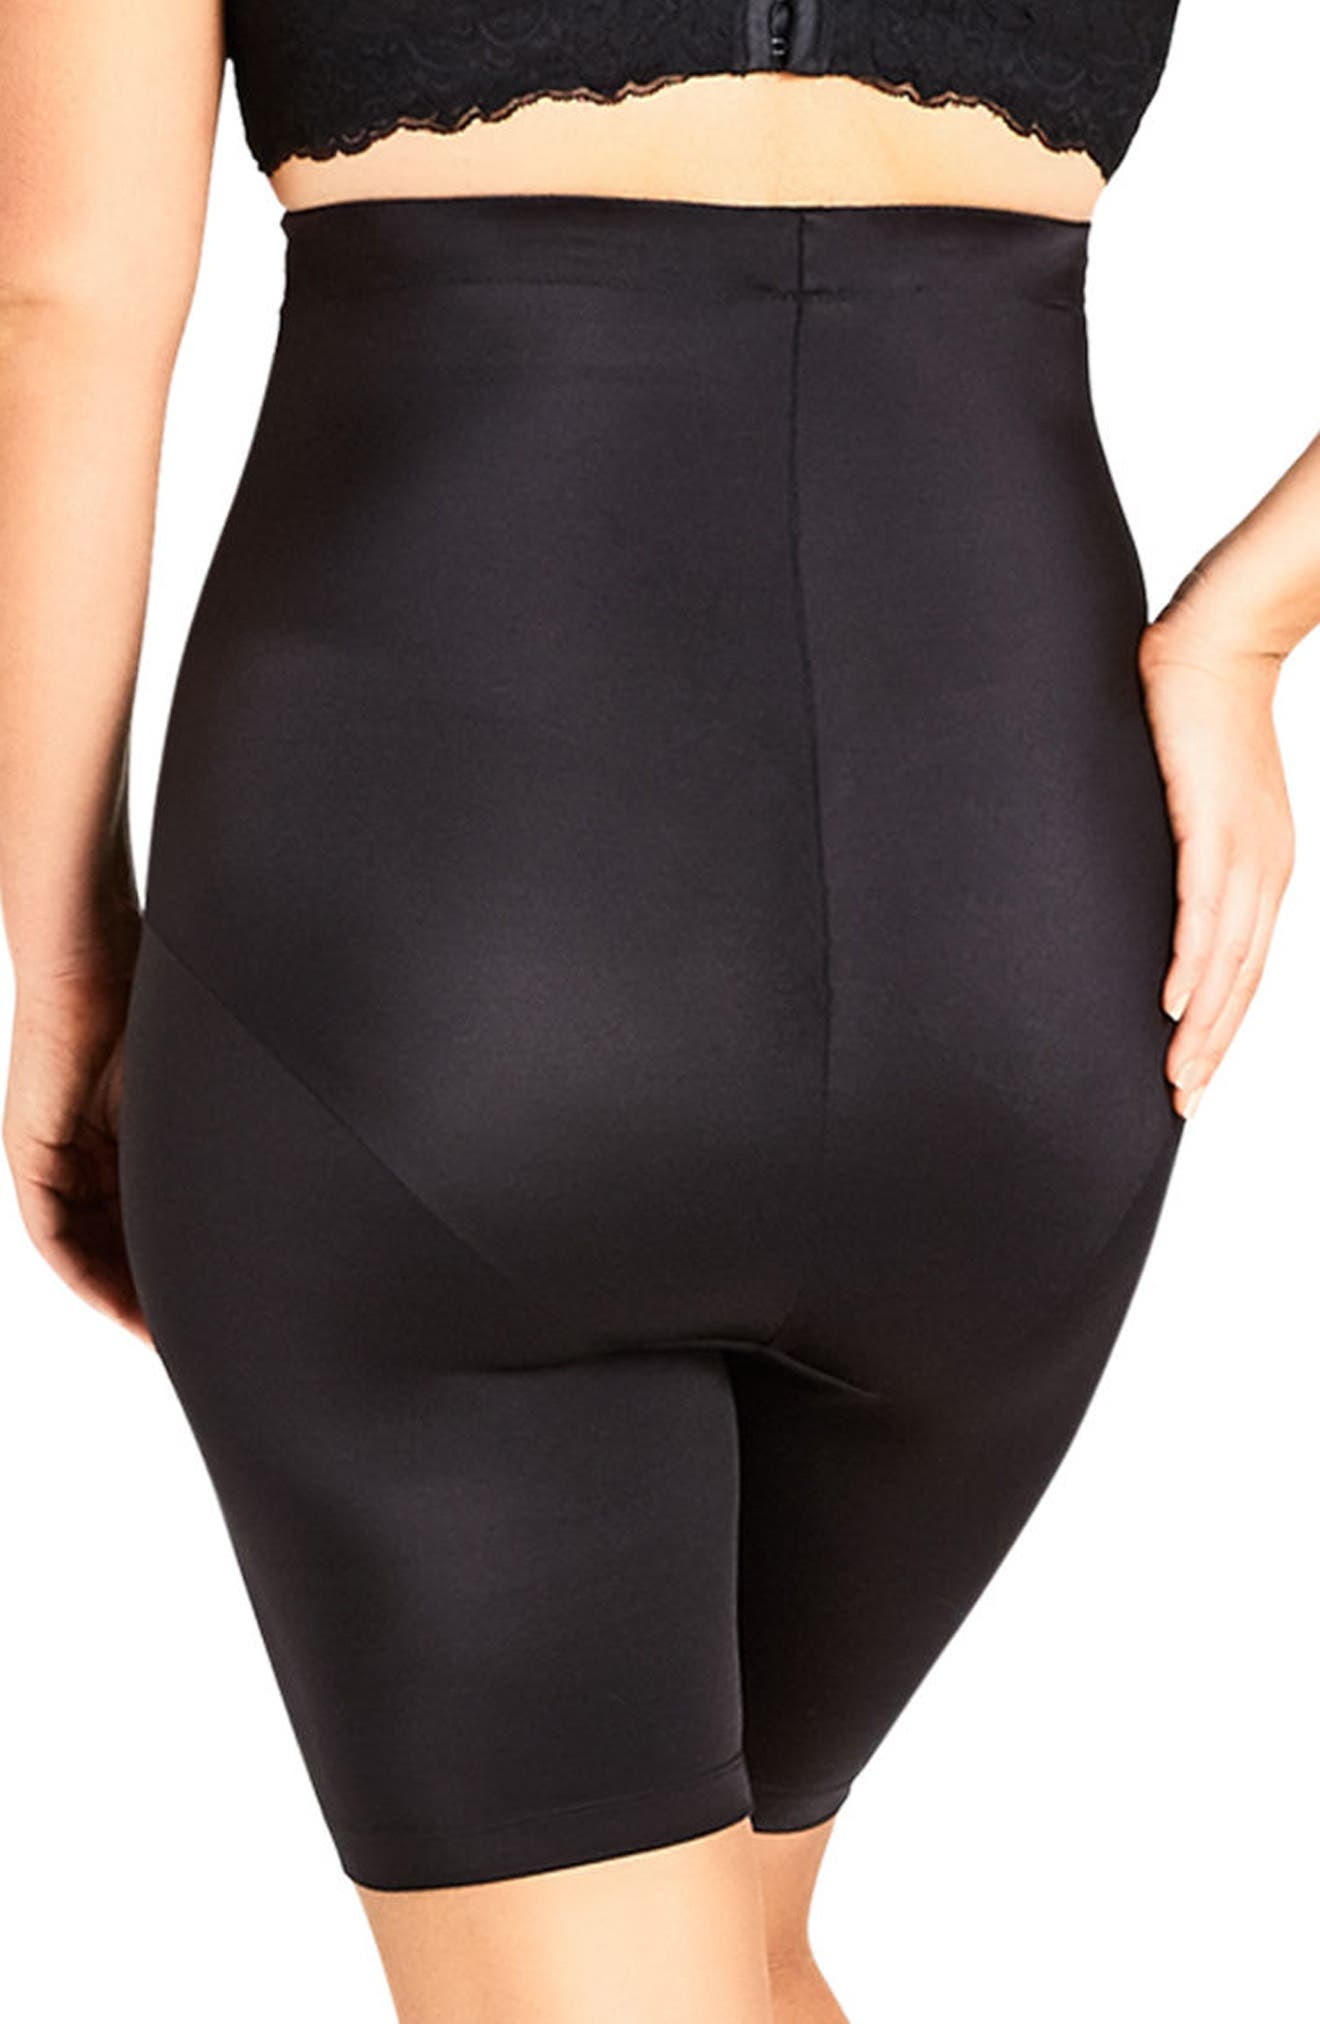 Alternate Image 2  - City Chic Smooth & Chic Thigh Shaper (Plus Size)